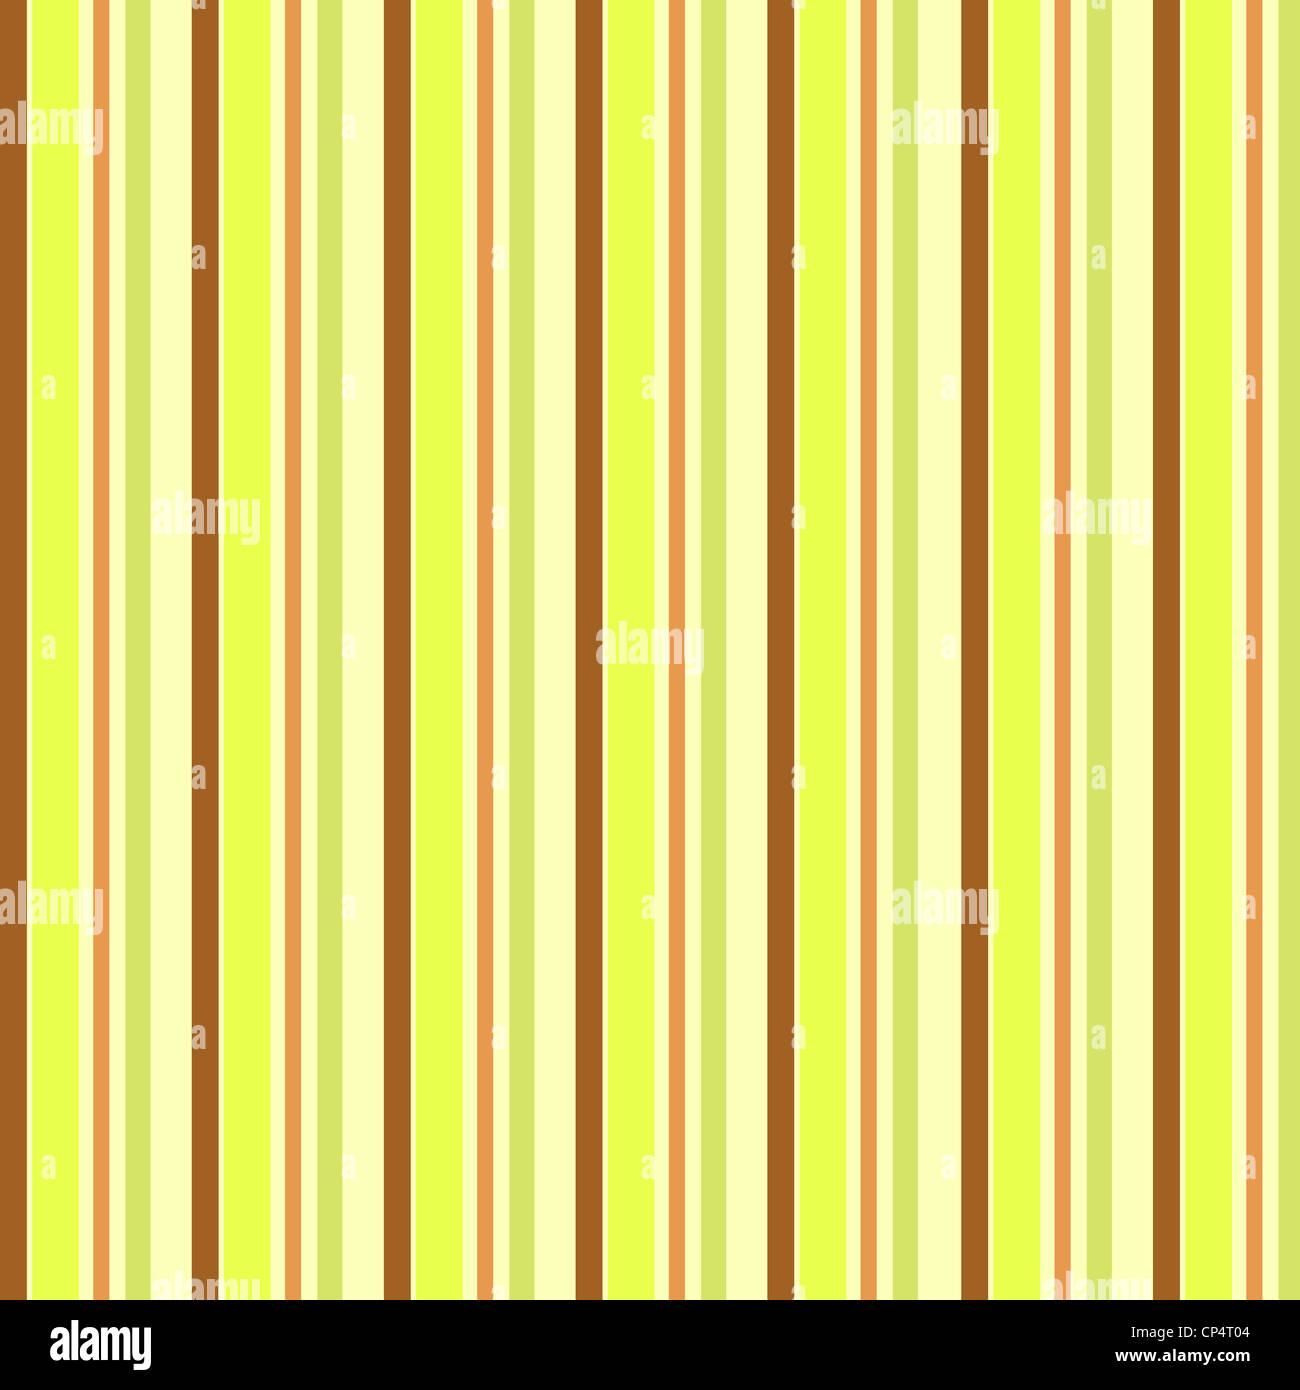 Trendy stripes pattern in yellow, green and brown colors Stock Photo